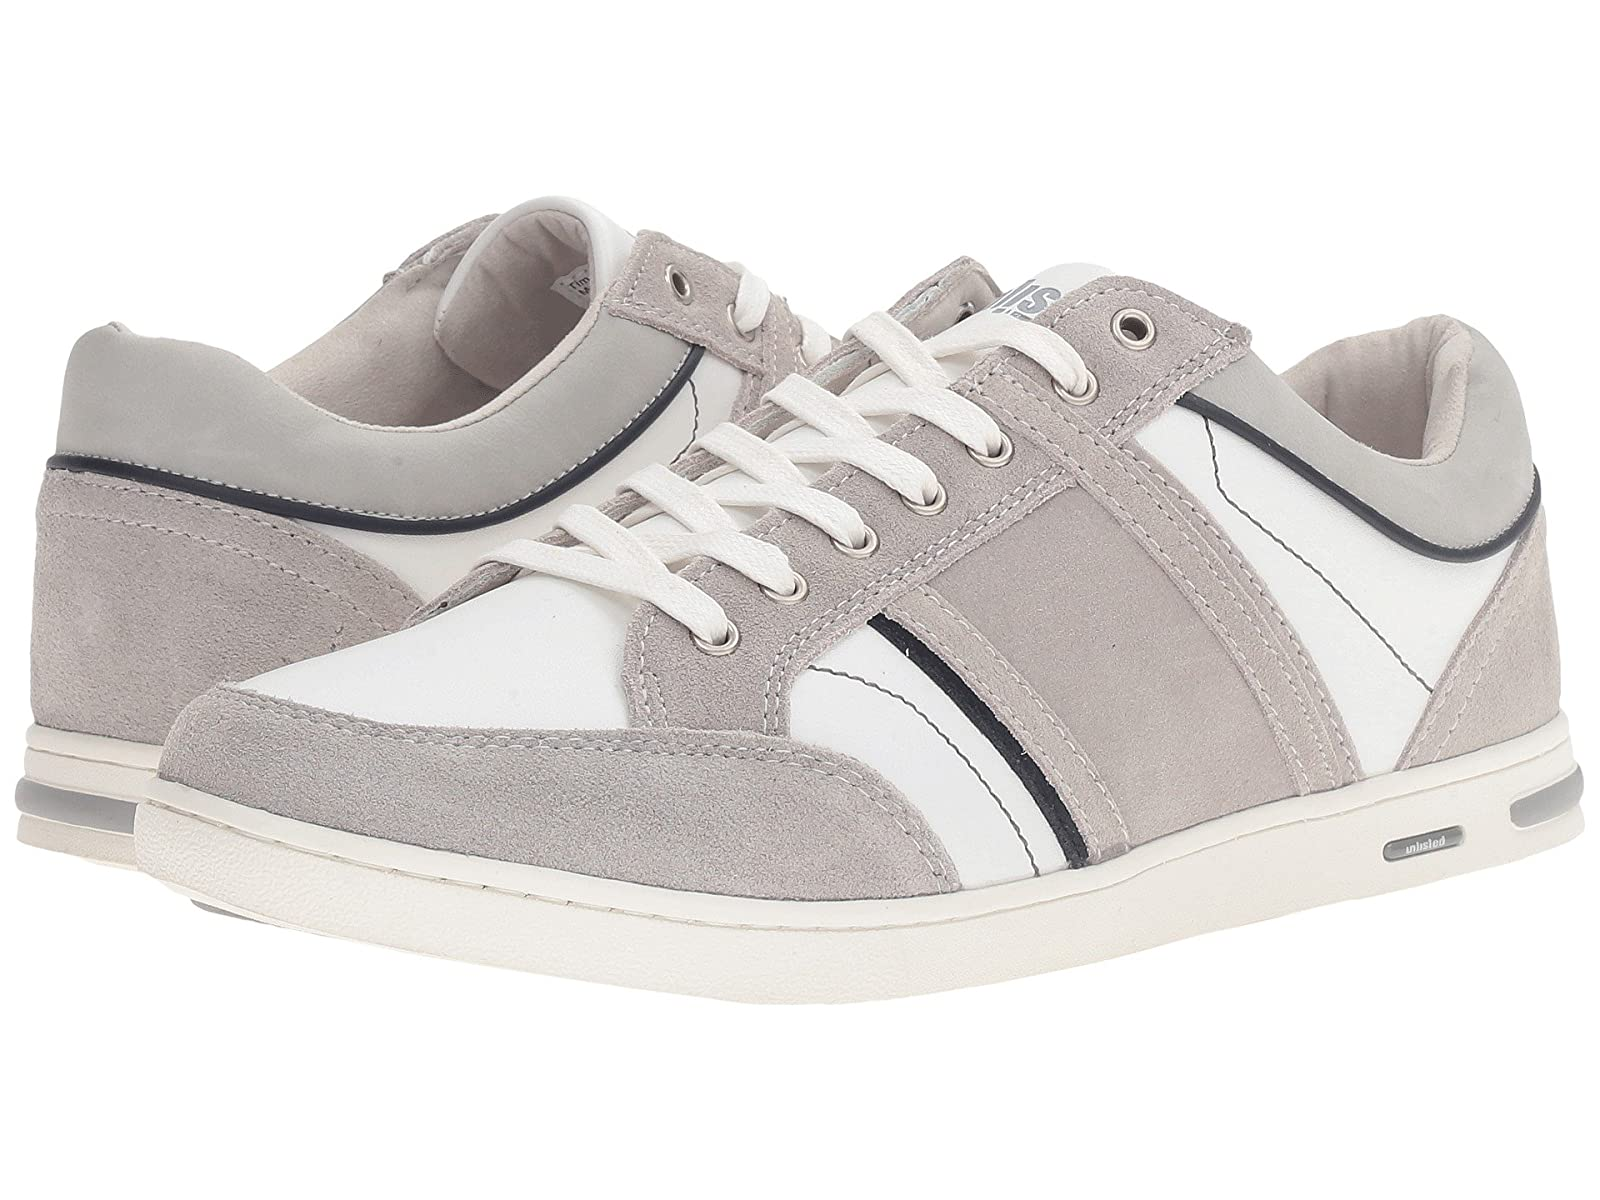 Kenneth Cole Unlisted Time FlewCheap and distinctive eye-catching shoes